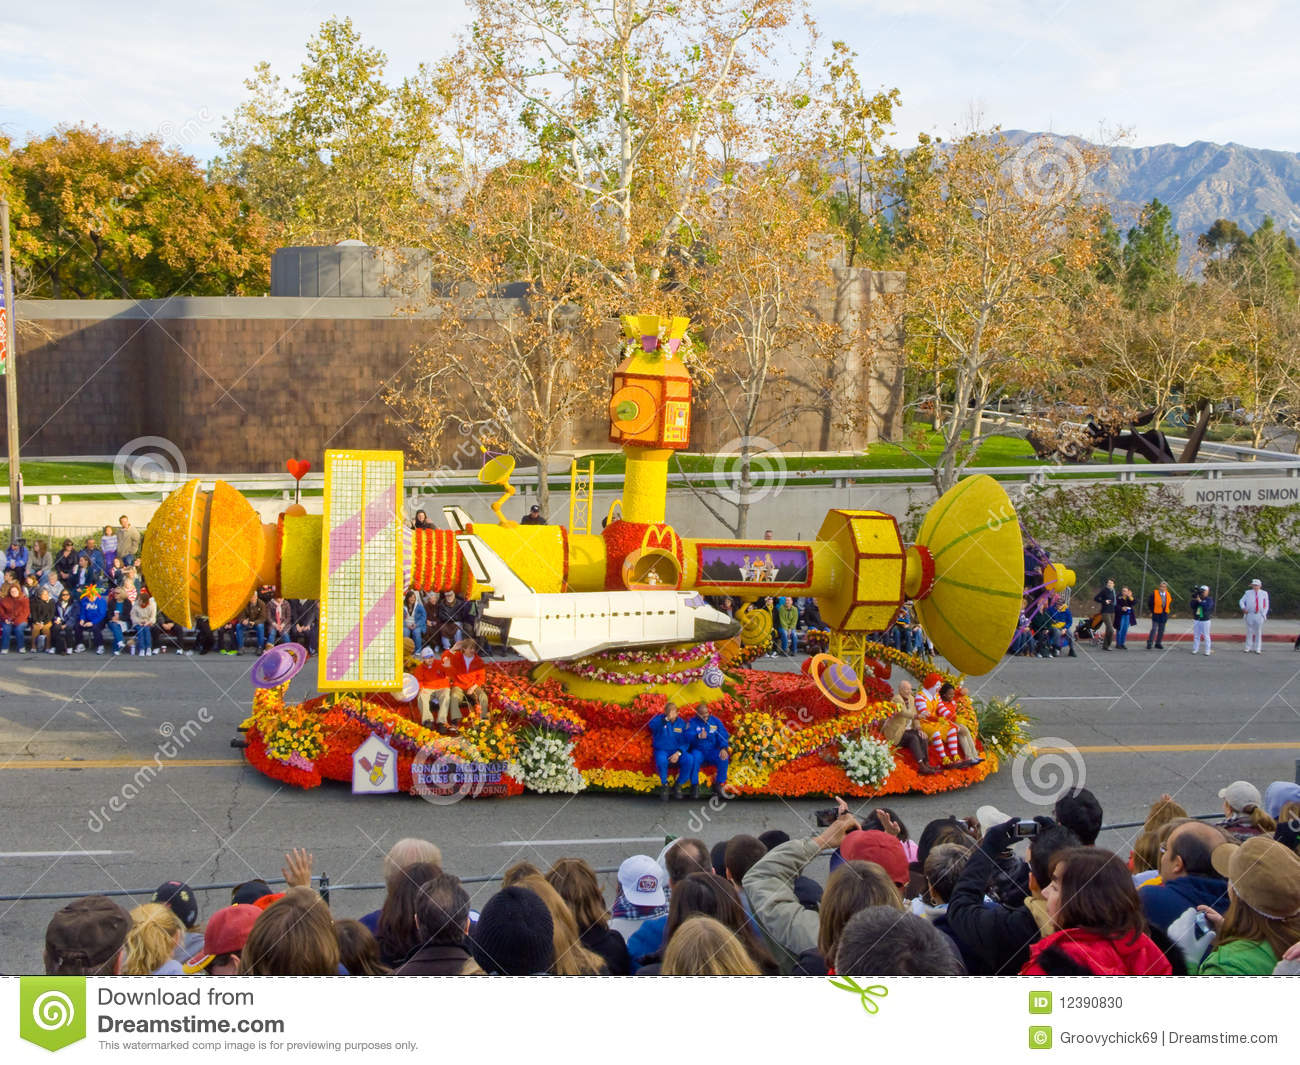 ronald mcdonald house float editorial image - image: 12390830